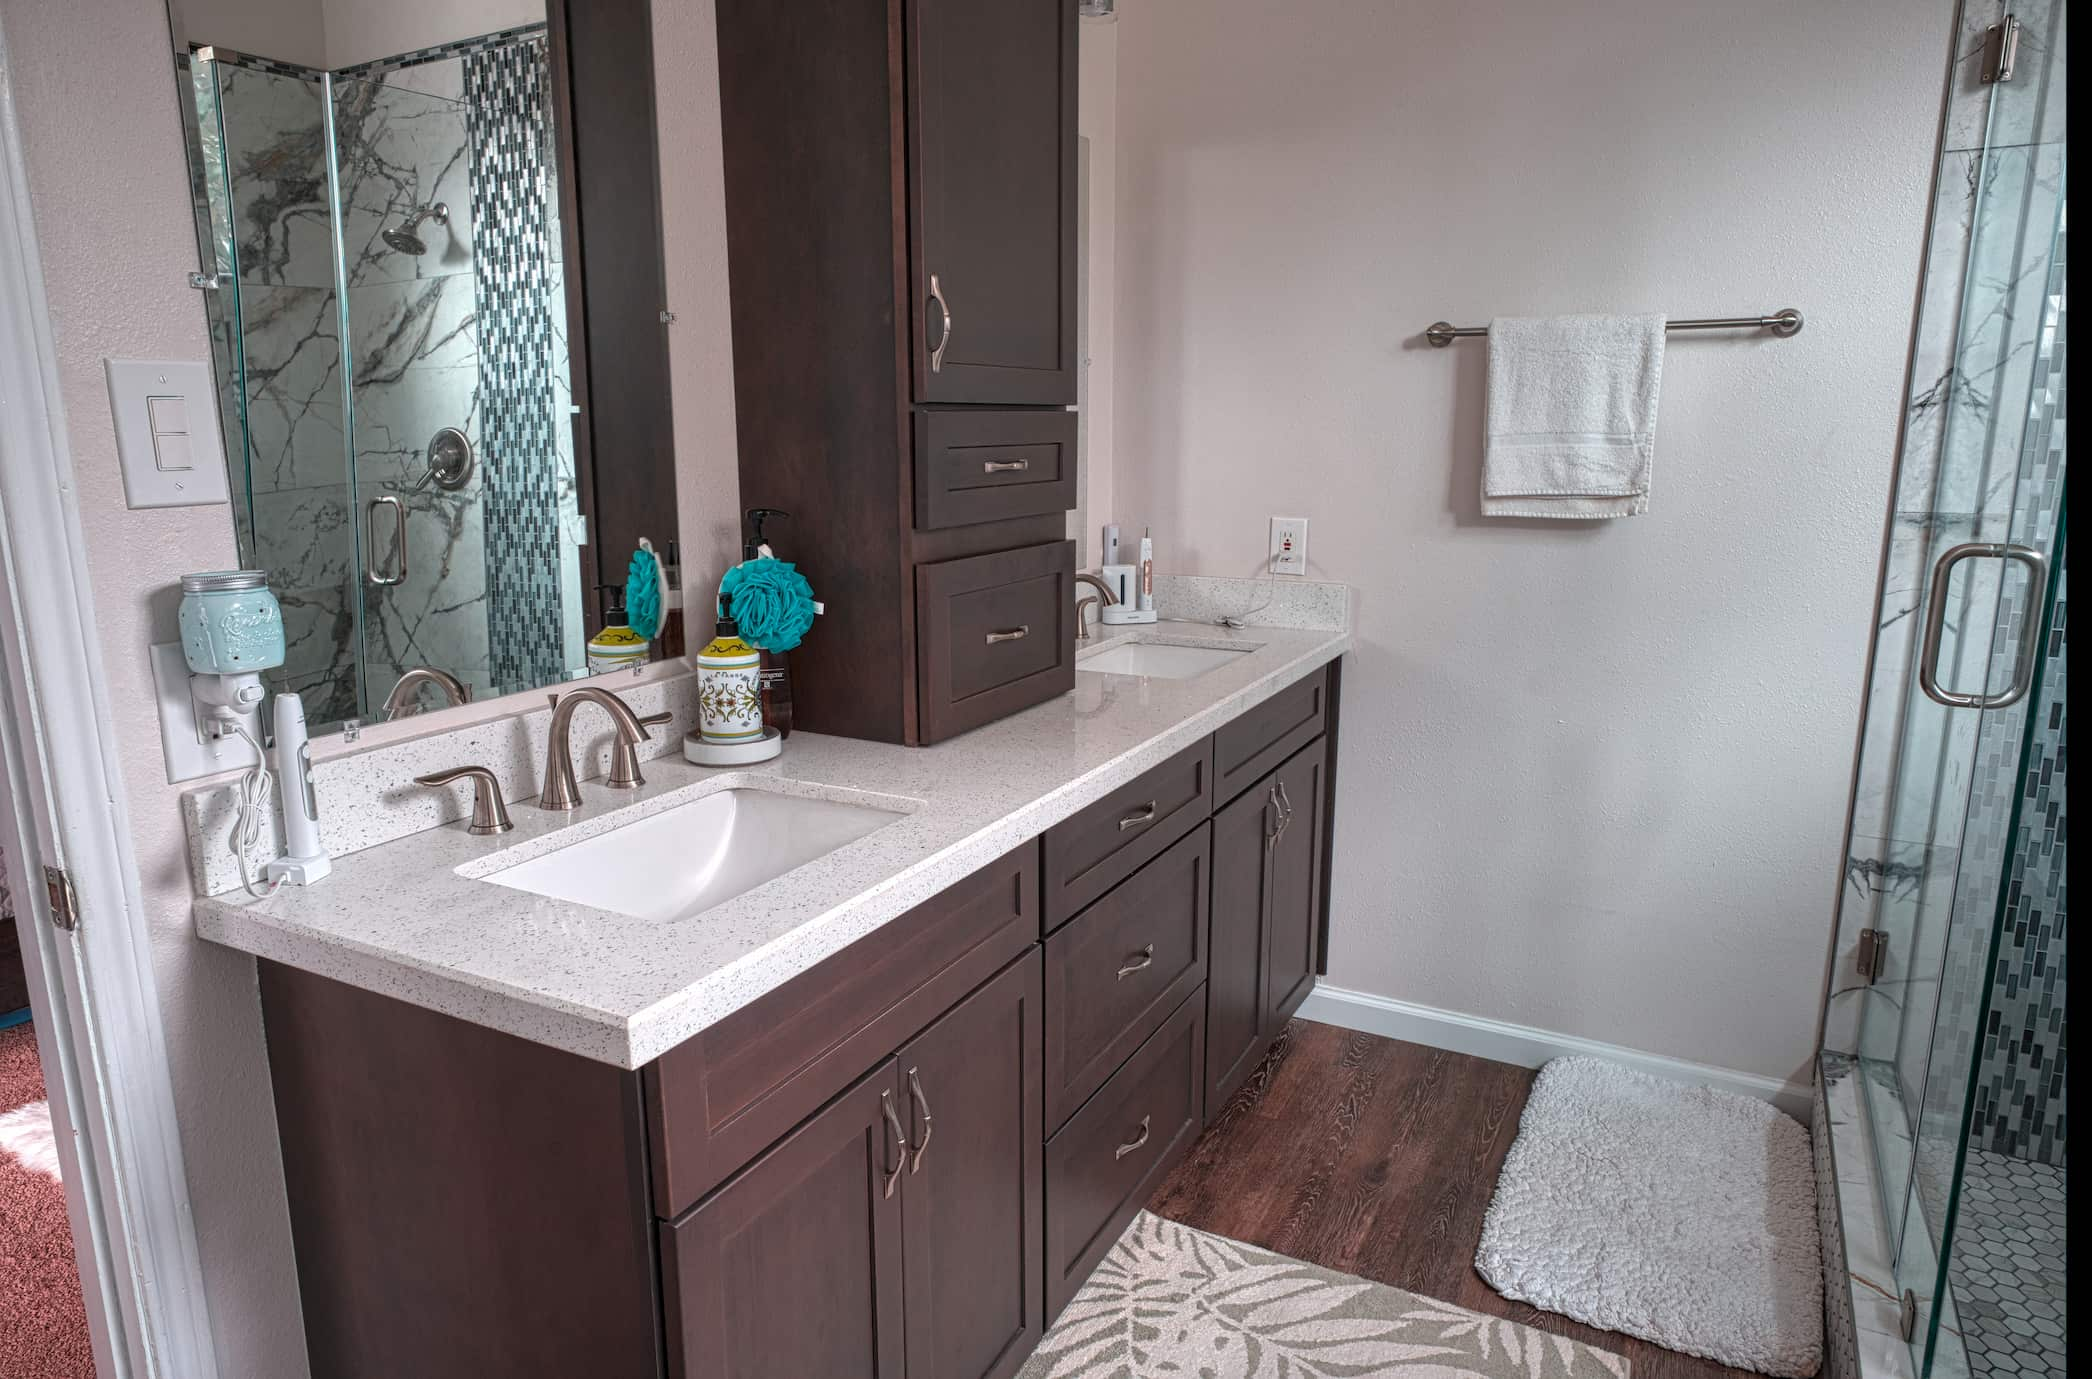 New Cabinet Remodel and Vanity Top Using Quartz with Undermount sinks